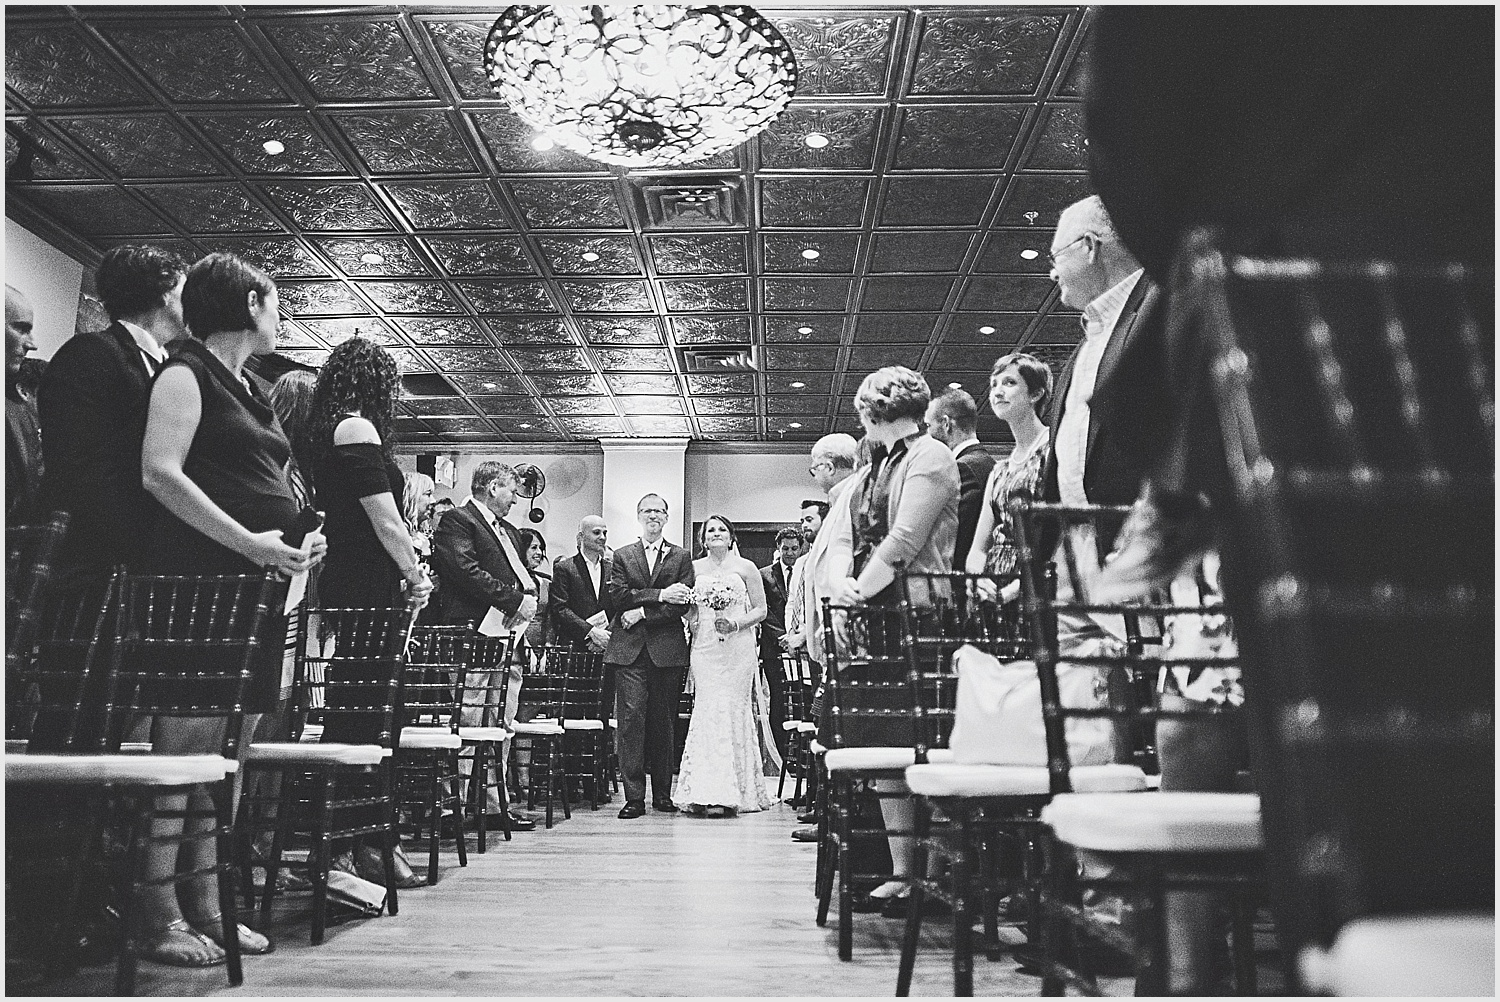 stpaul_wedding_lucas_botz_photography_021.jpg